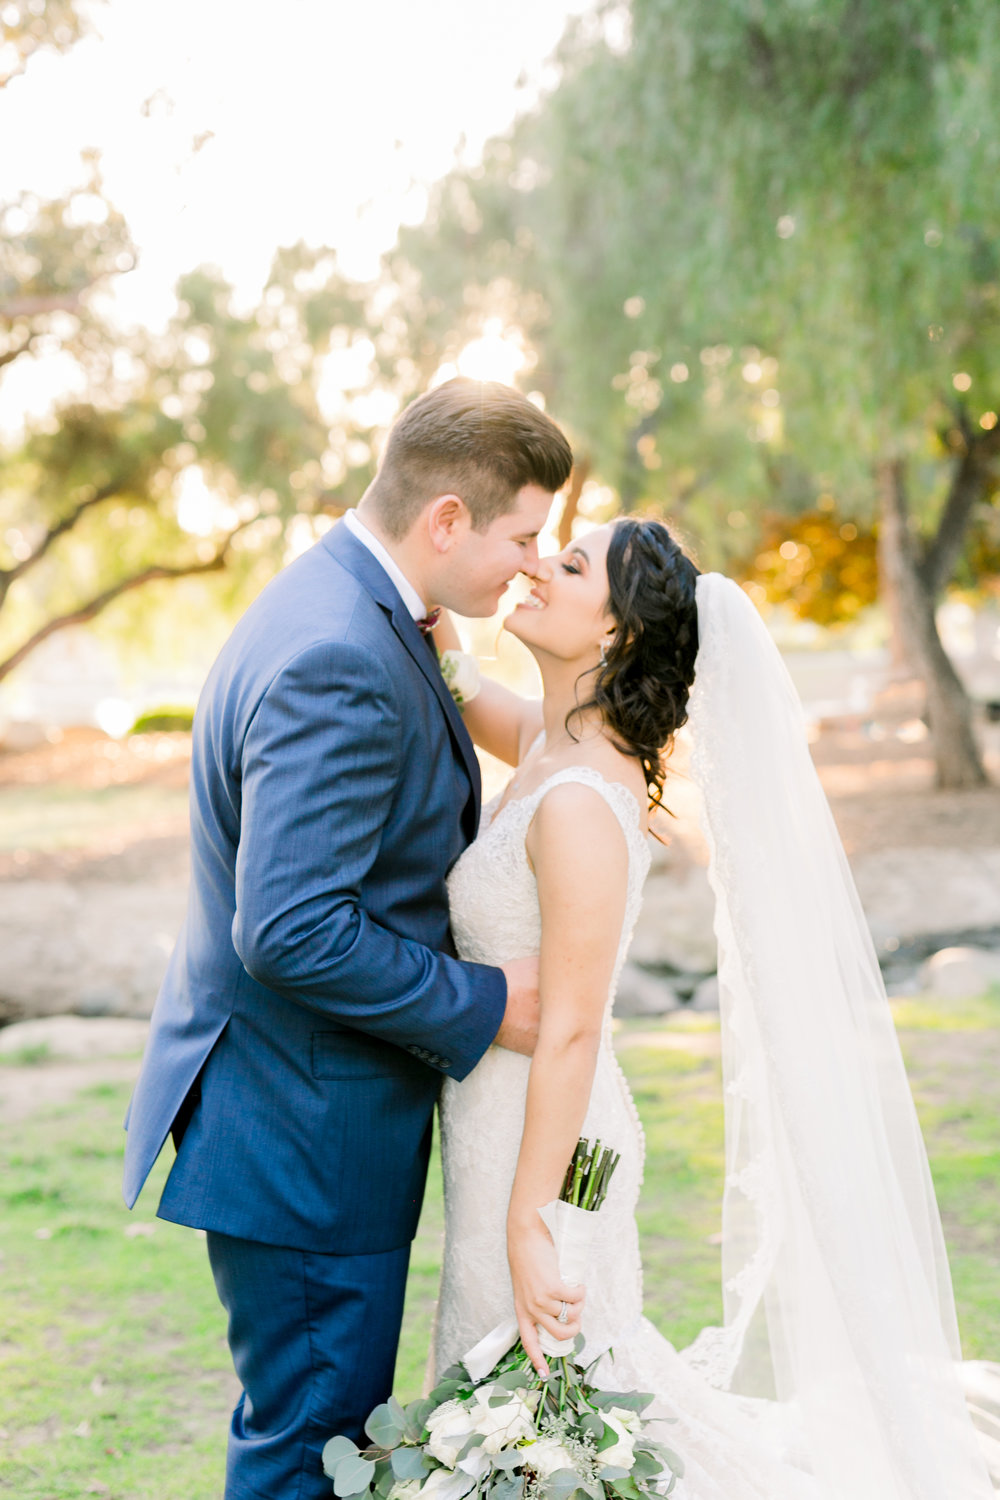 BRIDE & GROOM SUNSET ORANGE COUNTY CALIFORNIA WEDDING BY ABBIE MAE PHOTOGRAPHY